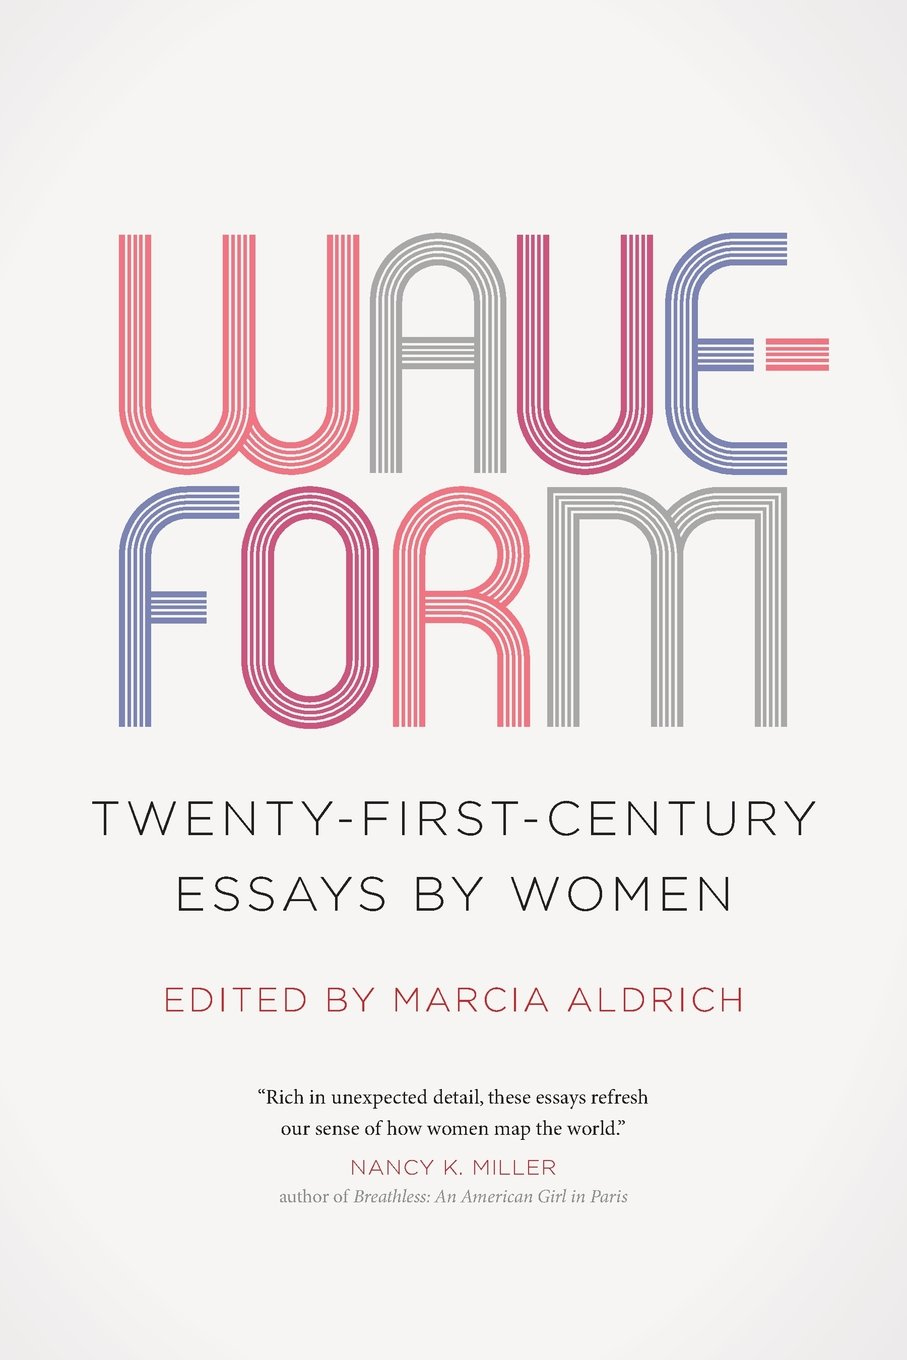 a room a view essay waveform twenty first century essays by  waveform twenty first century essays by women marcia aldrich waveform twenty first century essays by women a room a view essay